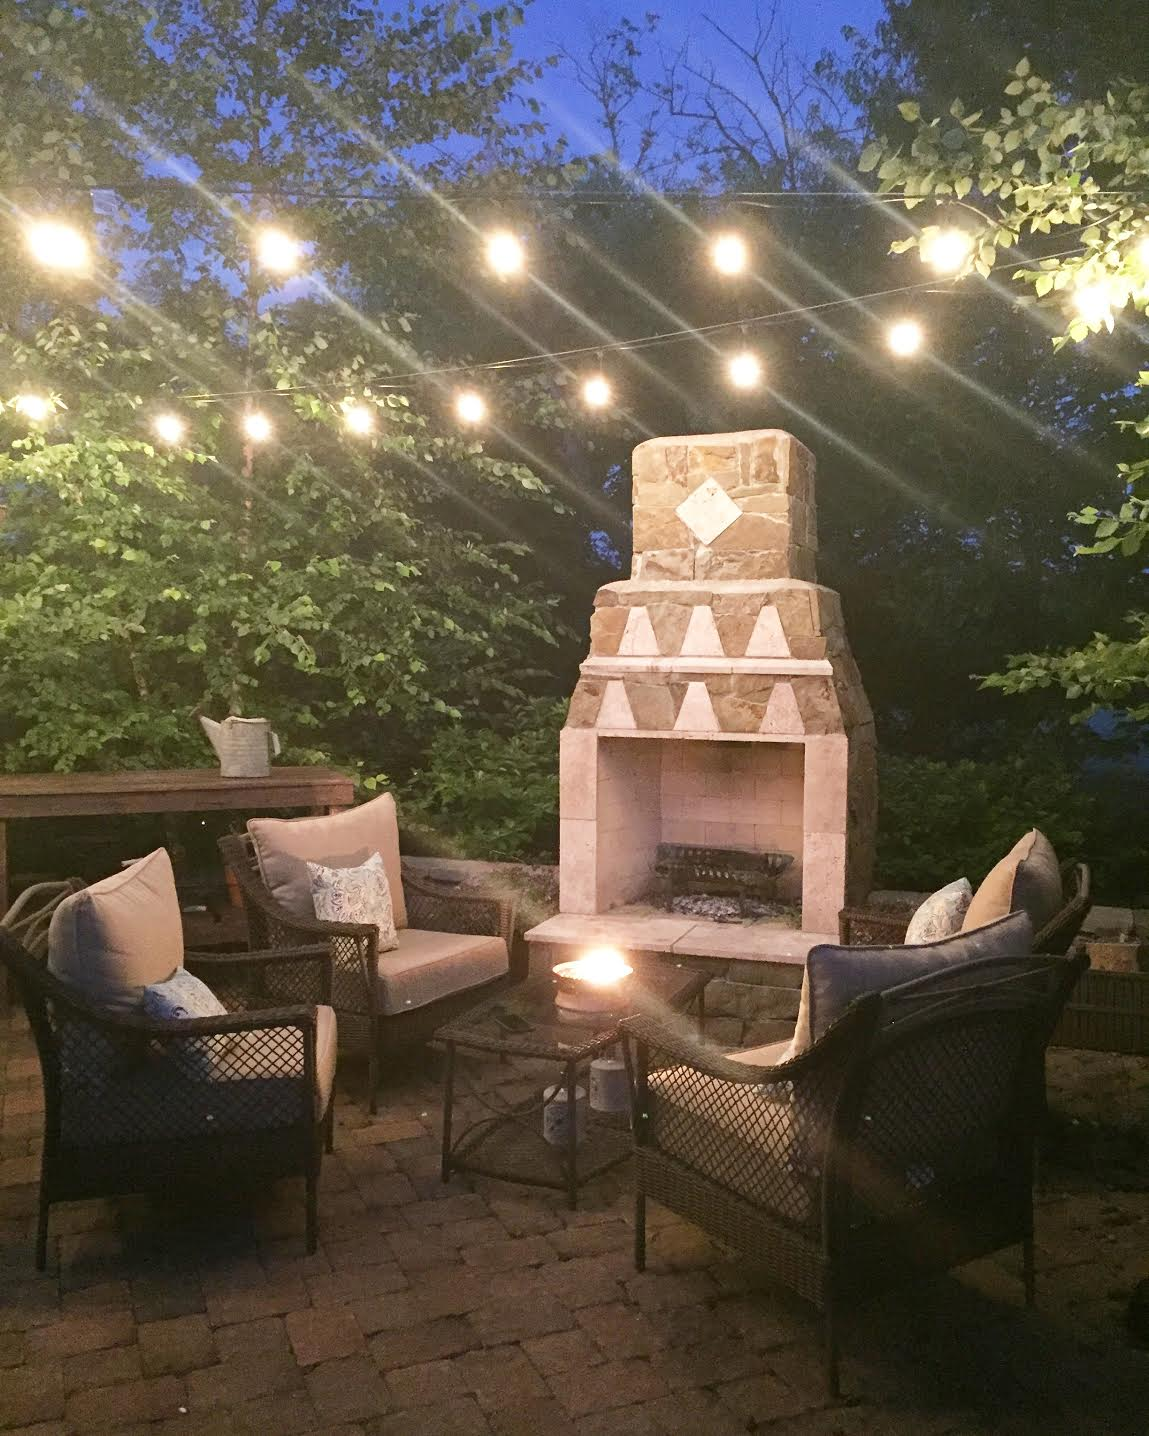 Outdoor Lights On Patio: My Top Ten Absolute Favorite Amazon Products From Thrifty